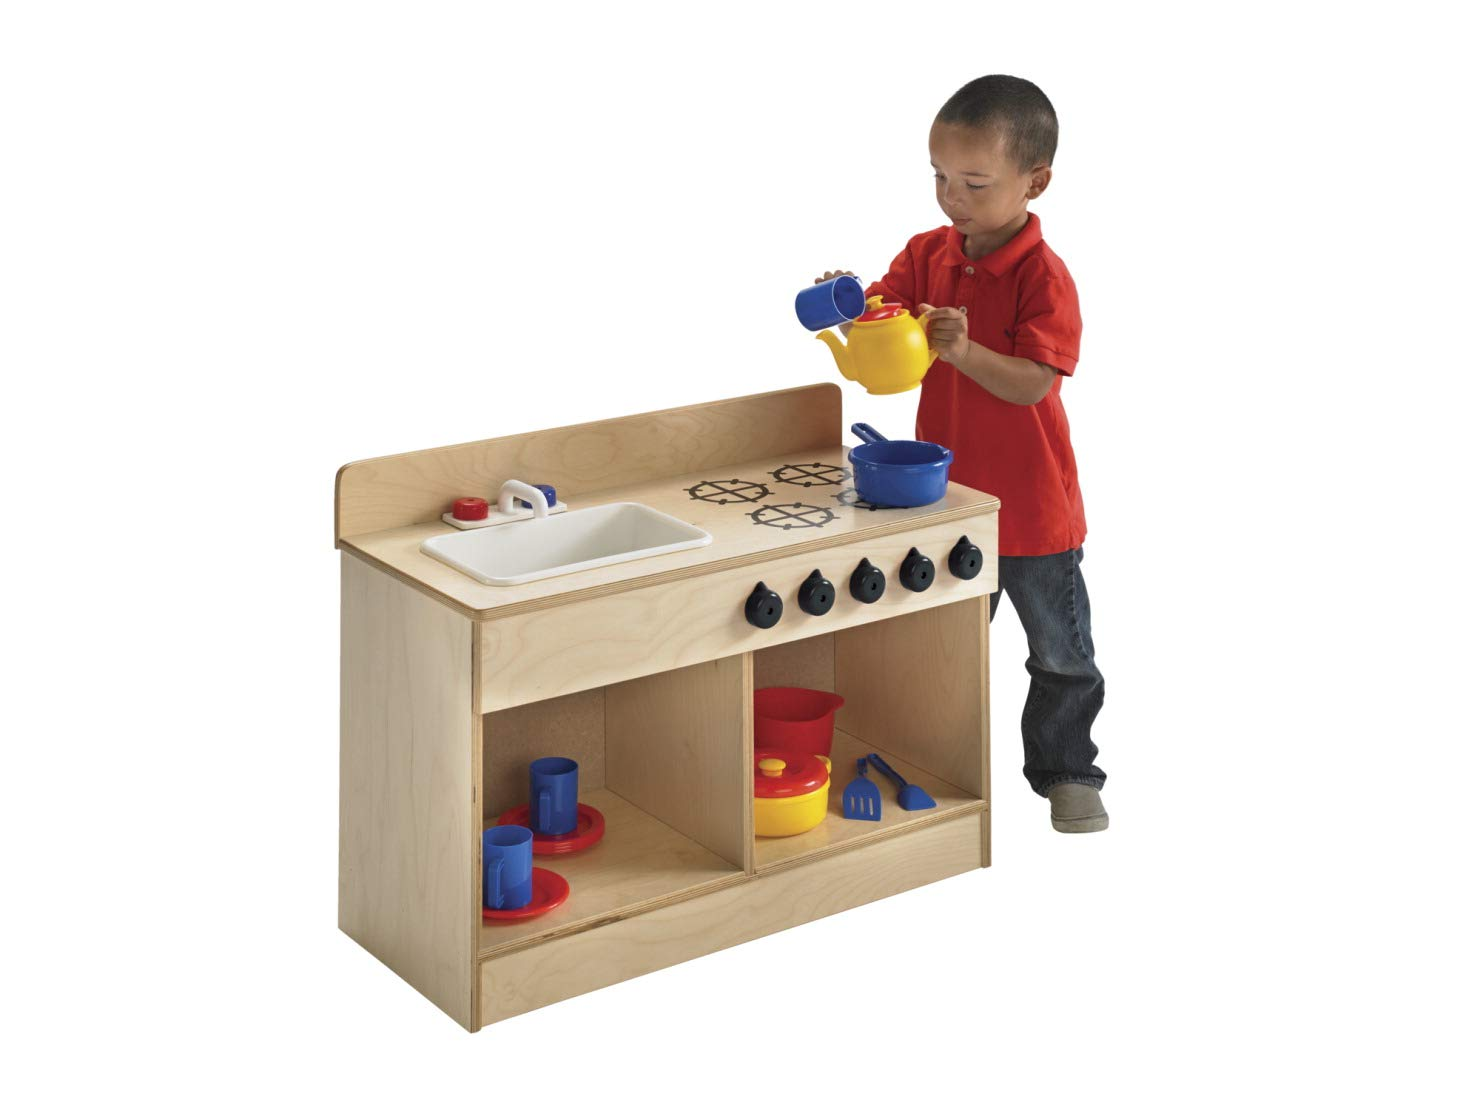 Childcraft 1491196 Toddler Sink and Stove Combo, 21.5'' Height, 13.38'' Width, 29.5'' Length, Natural Wood by Childcraft (Image #7)